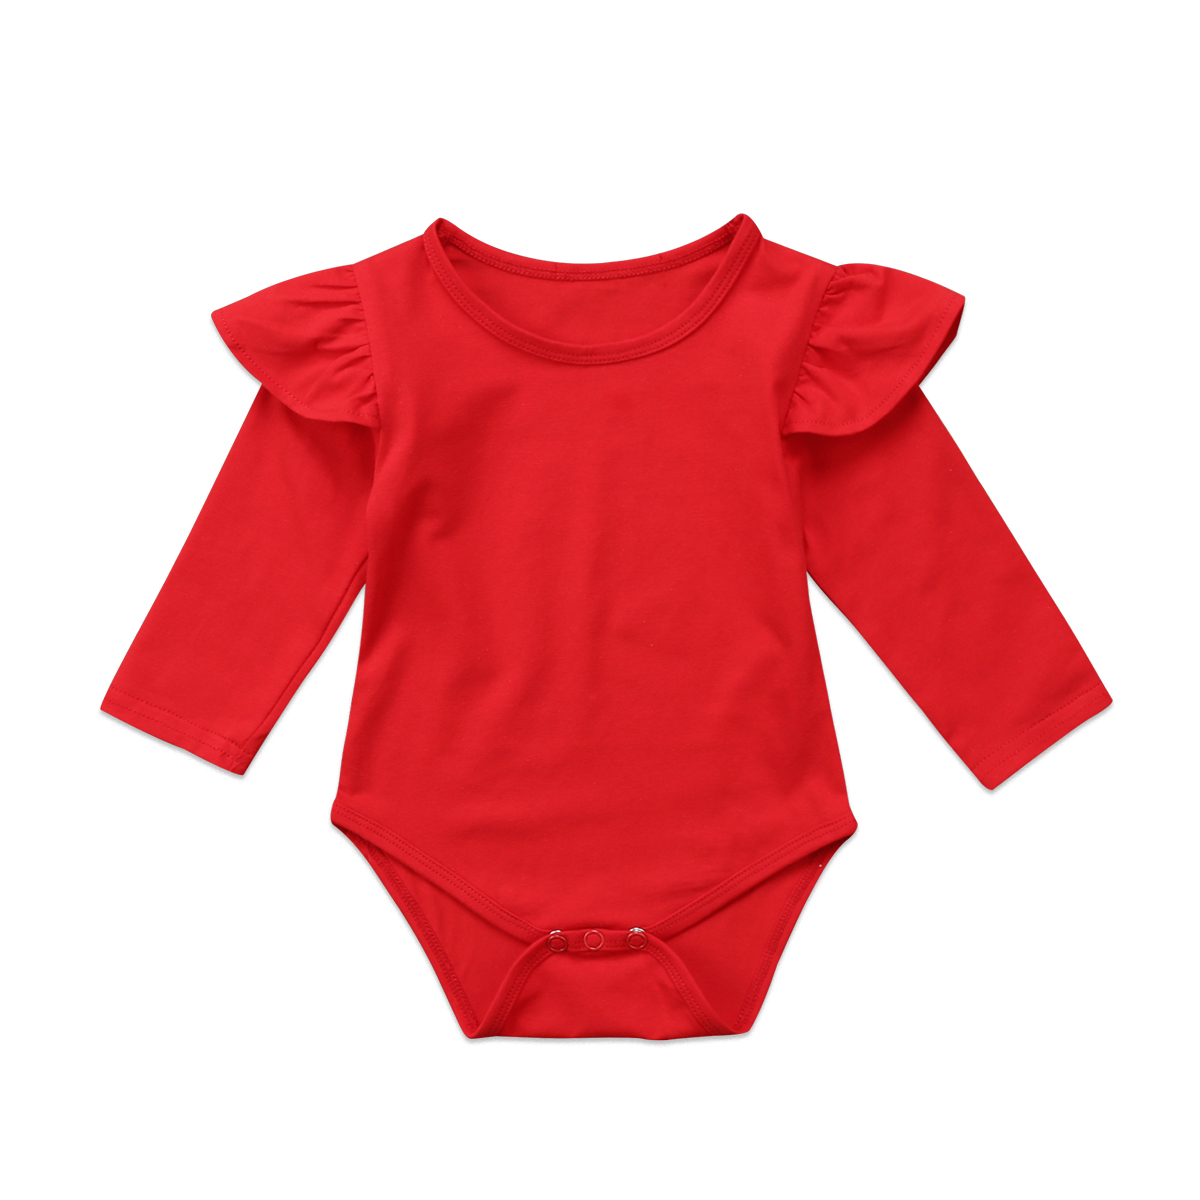 One Piece Newborn Kid Baby Girls 2017 New Christmas Ruffle Long Sleeve Solid Red Romper Jumpsuit Outfits Clothes layered pleated ruffle sleeve solid top